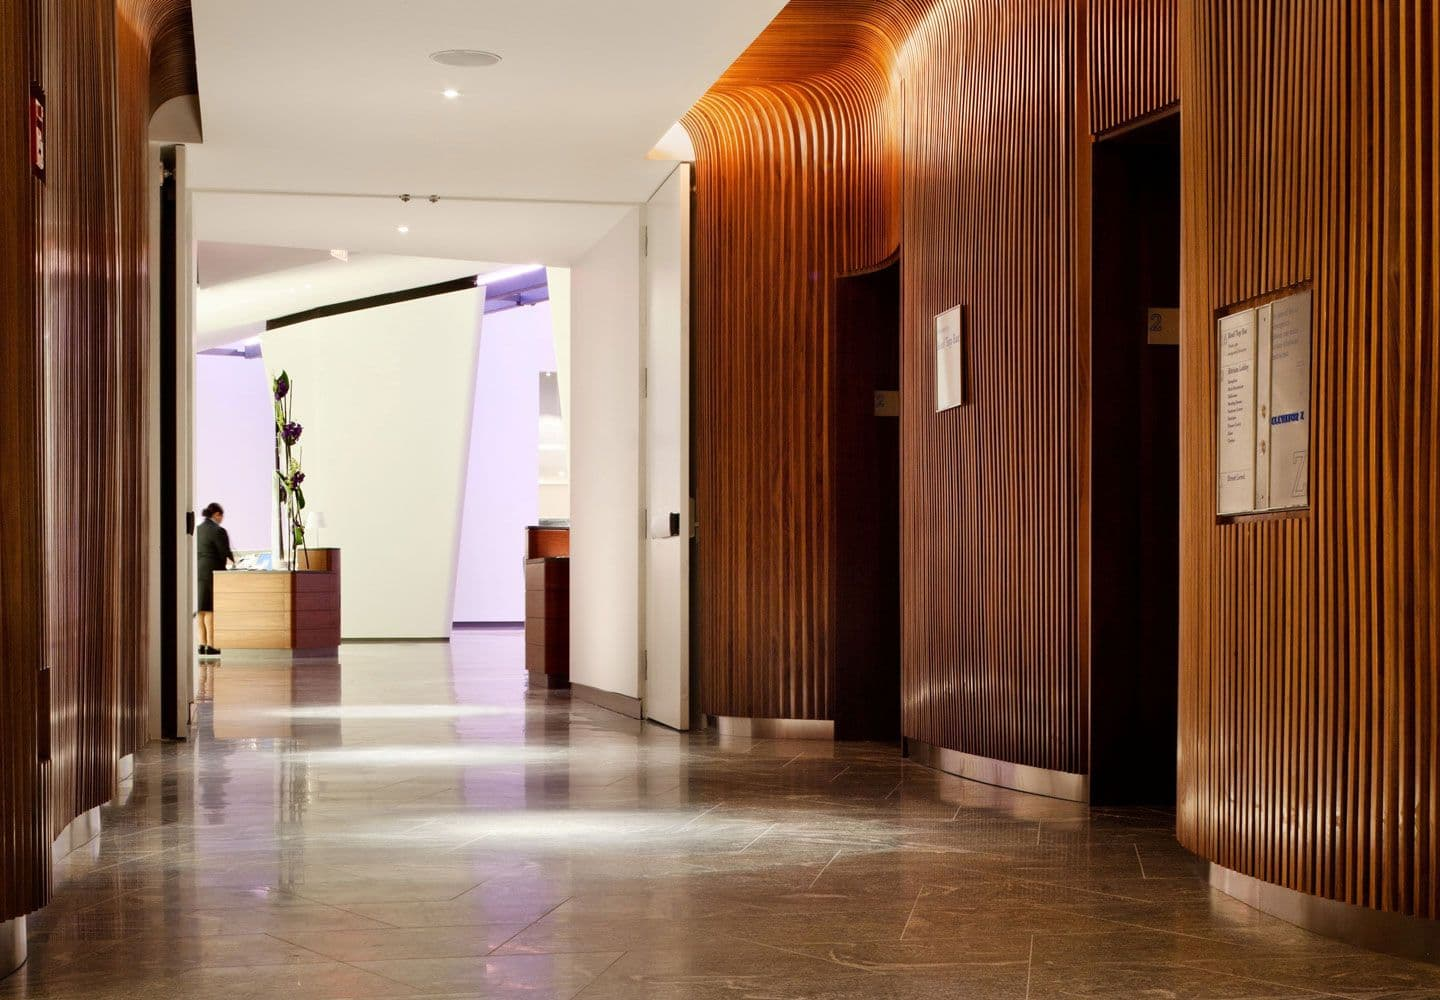 Idx Hotel Inter additionally Kendall Rucker Speir Favorites X likewise Gallery Larger Hotel Elevator Area also House Int further Scottishmutualbuildingexterior. on guest house design plans